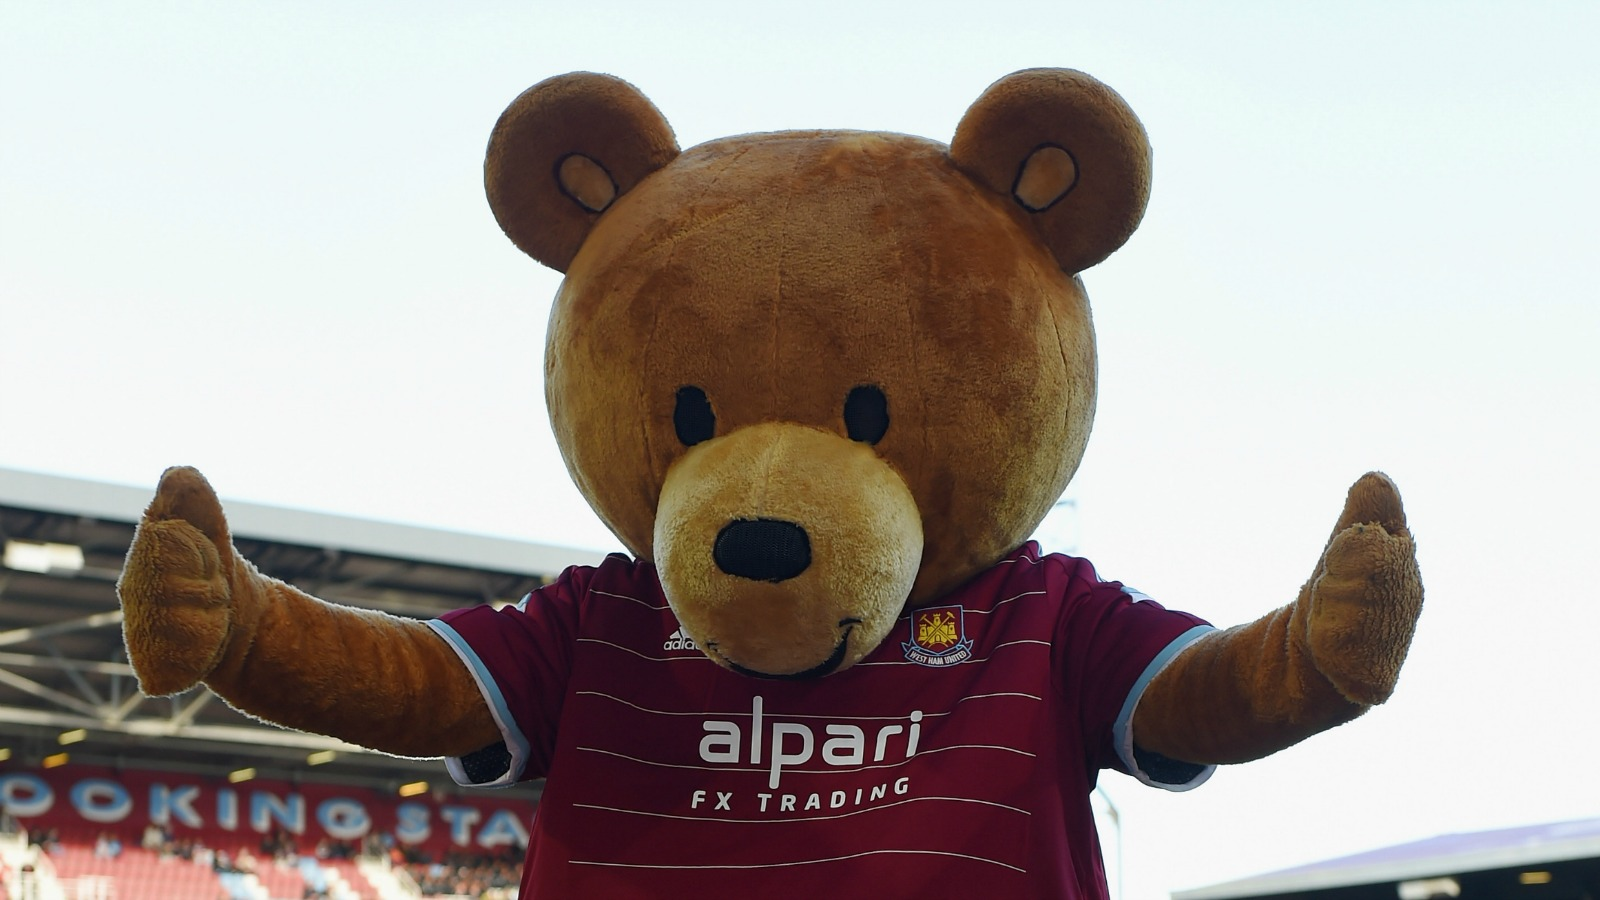 Arsenal fan takes out frustration by berating West Ham teddy bear mascot